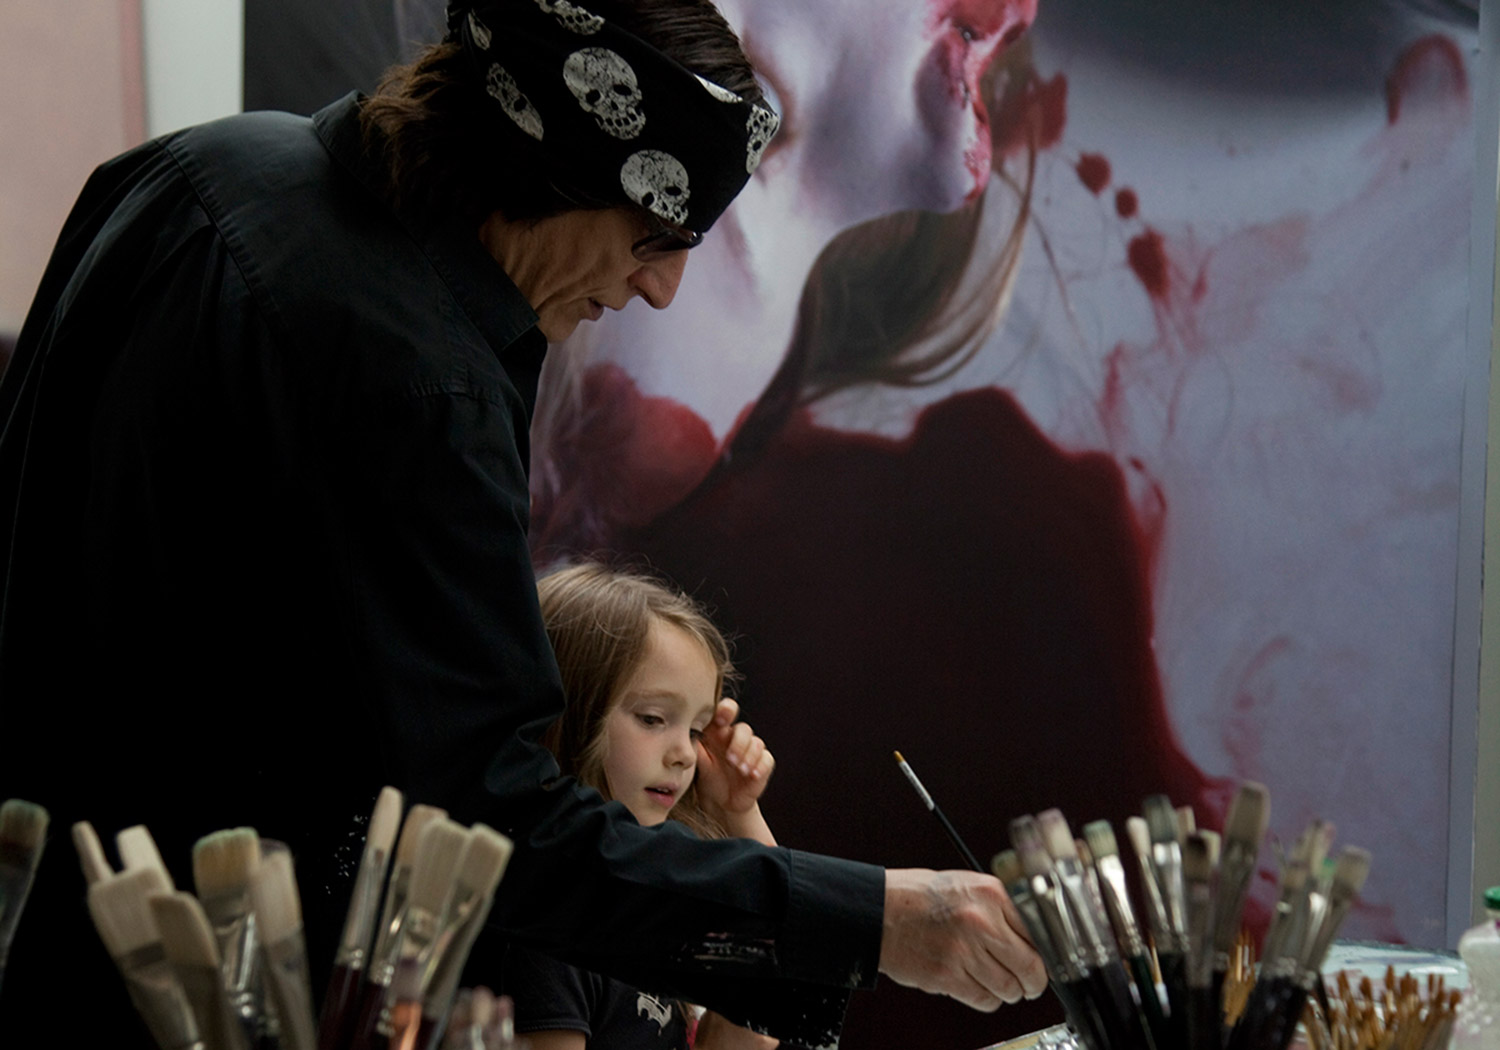 Gottfried Helnwein - In studio with The Murmur of the Innocents